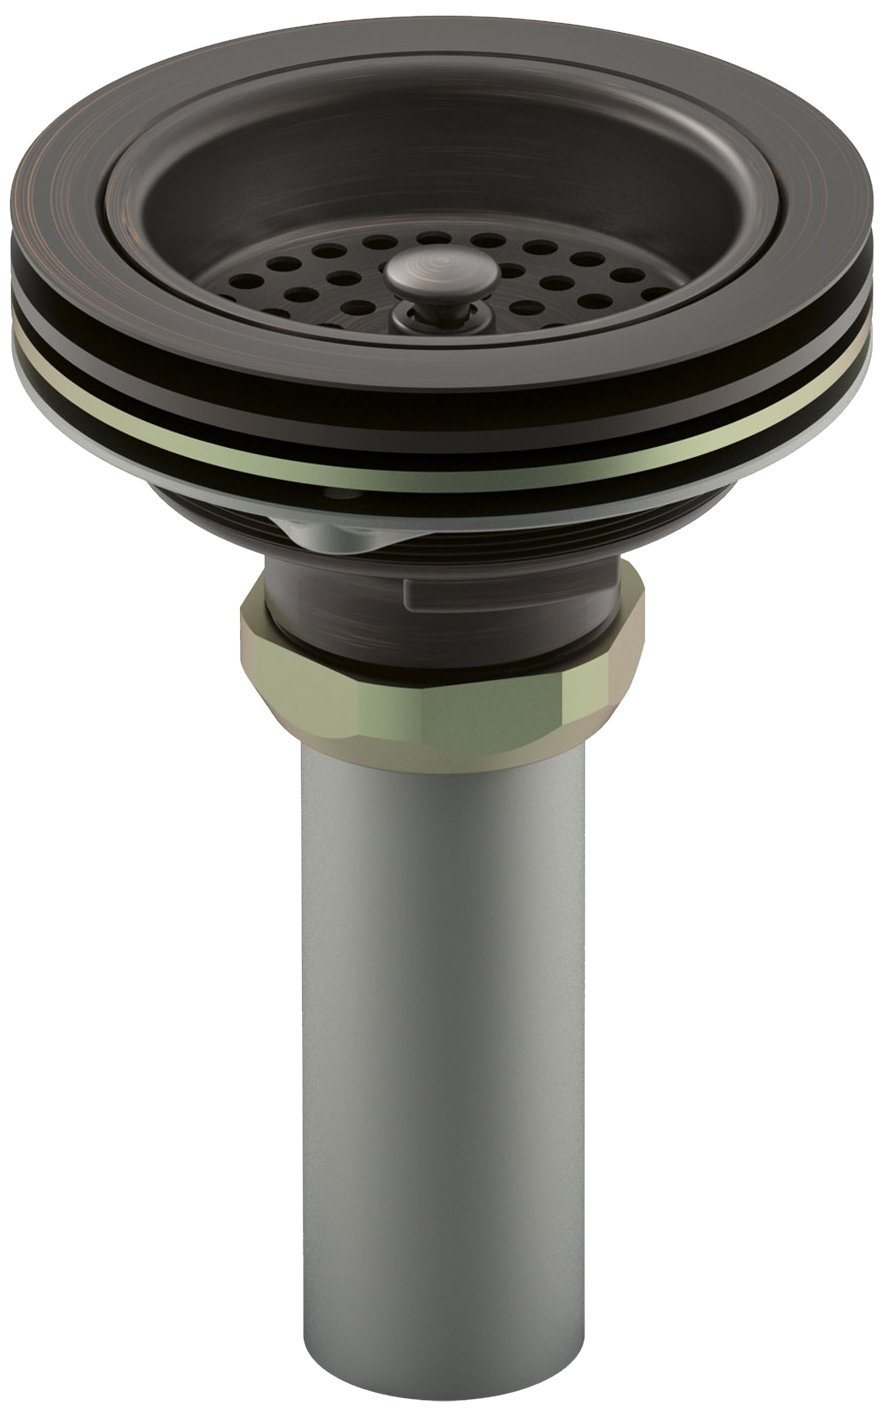 Kohler K-8801-2BZ Duostrainer Sink Strainer, Oil Rubbed Bronze by Kohler (Image #1)